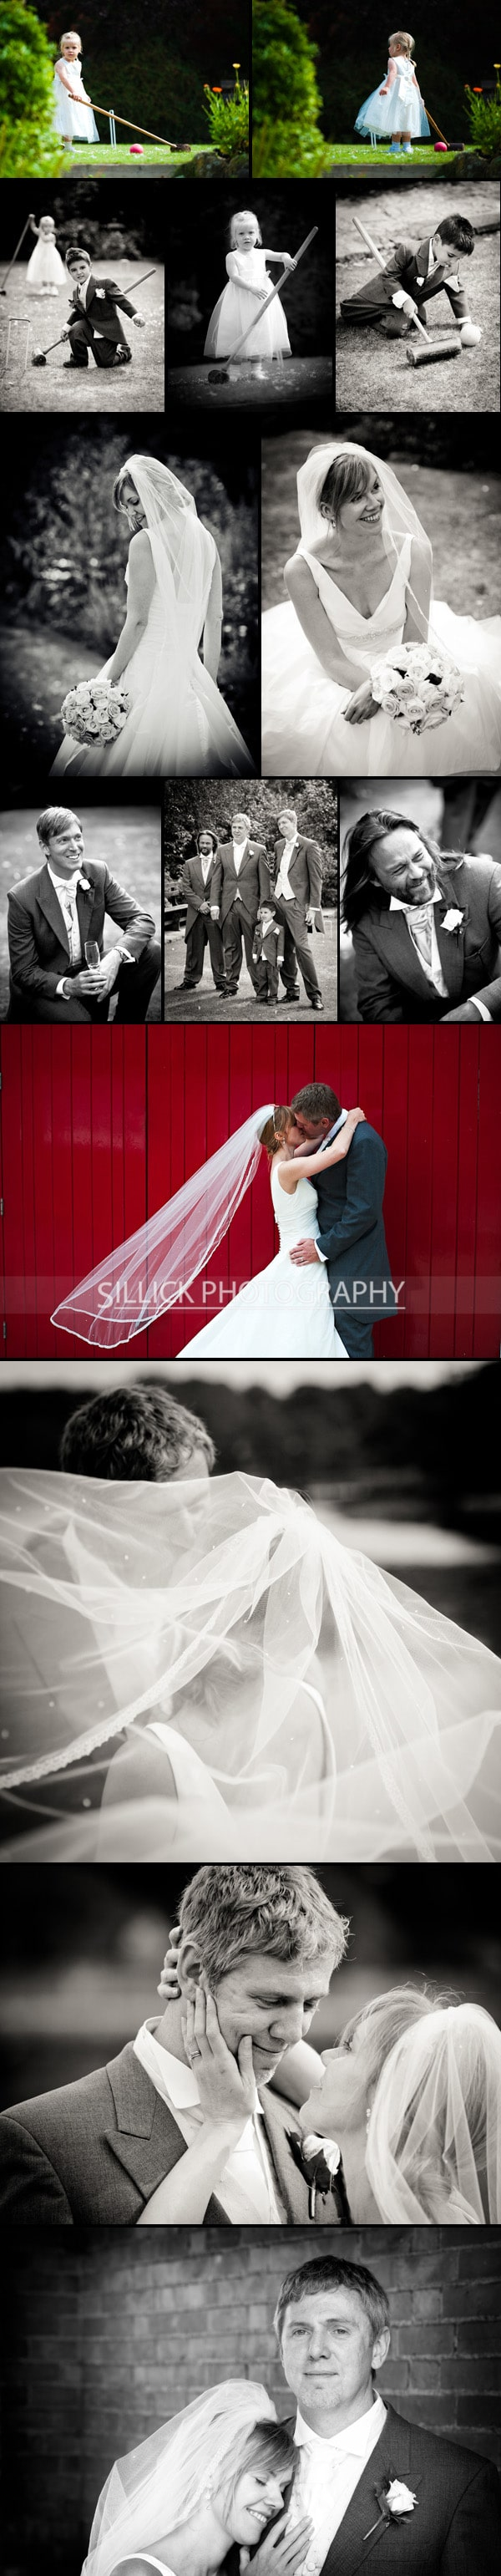 Hampshire weddings - Sillick photography